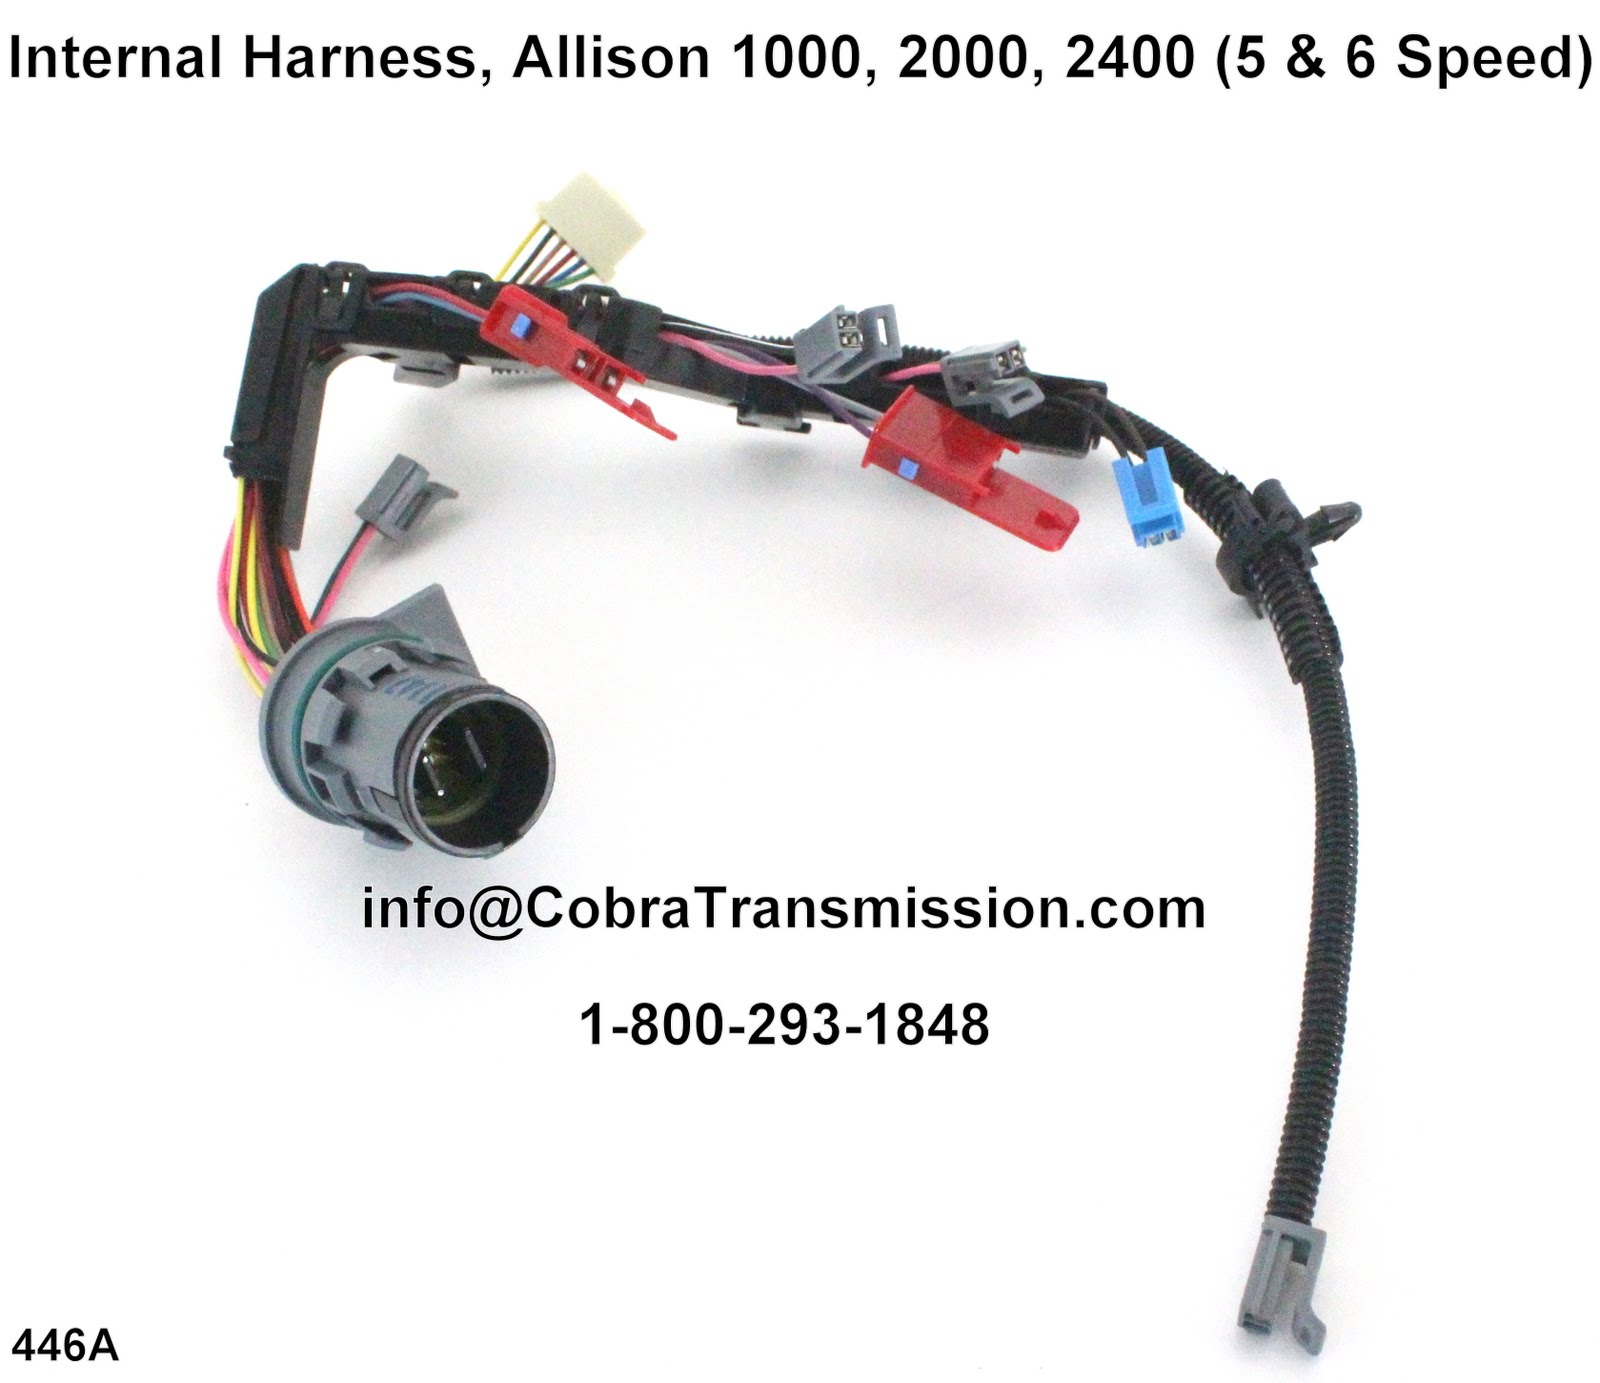 Cobra Transmission Parts 1 800 293 1848 Allison 1000 2000 2400 4t45e Wiring Diagram M74